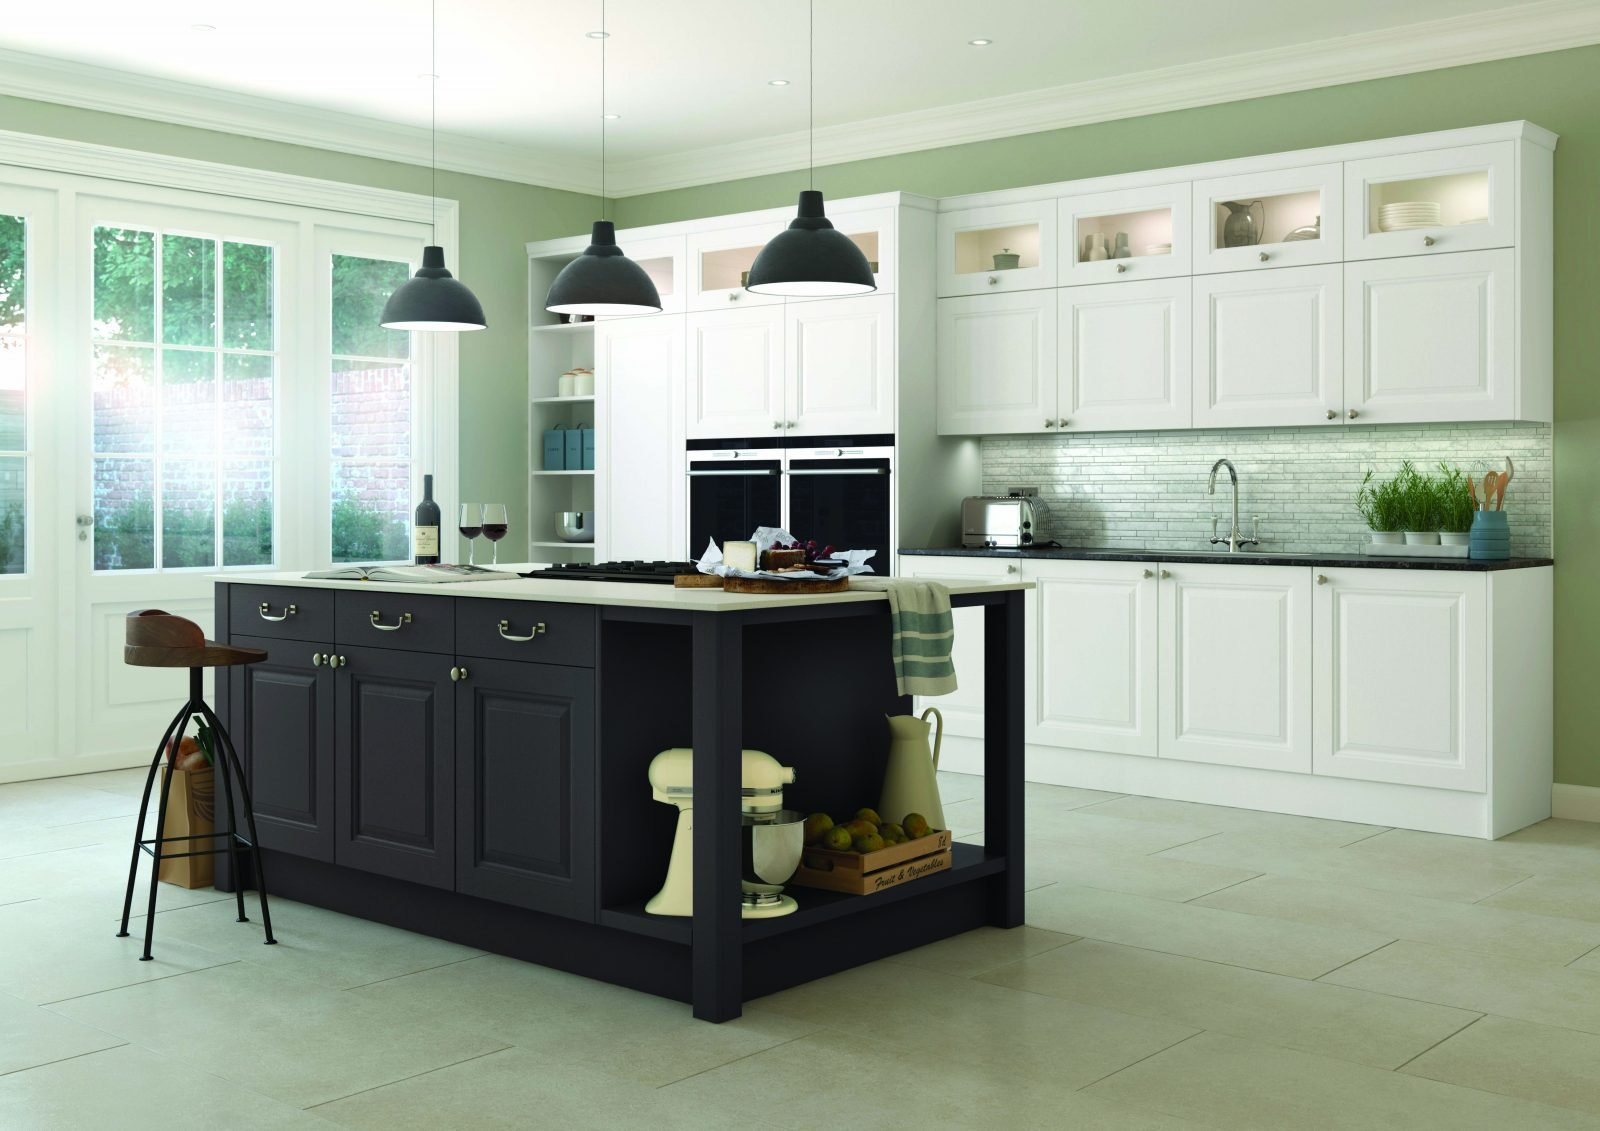 Town and Country | Benchmark Kitchens Oxford